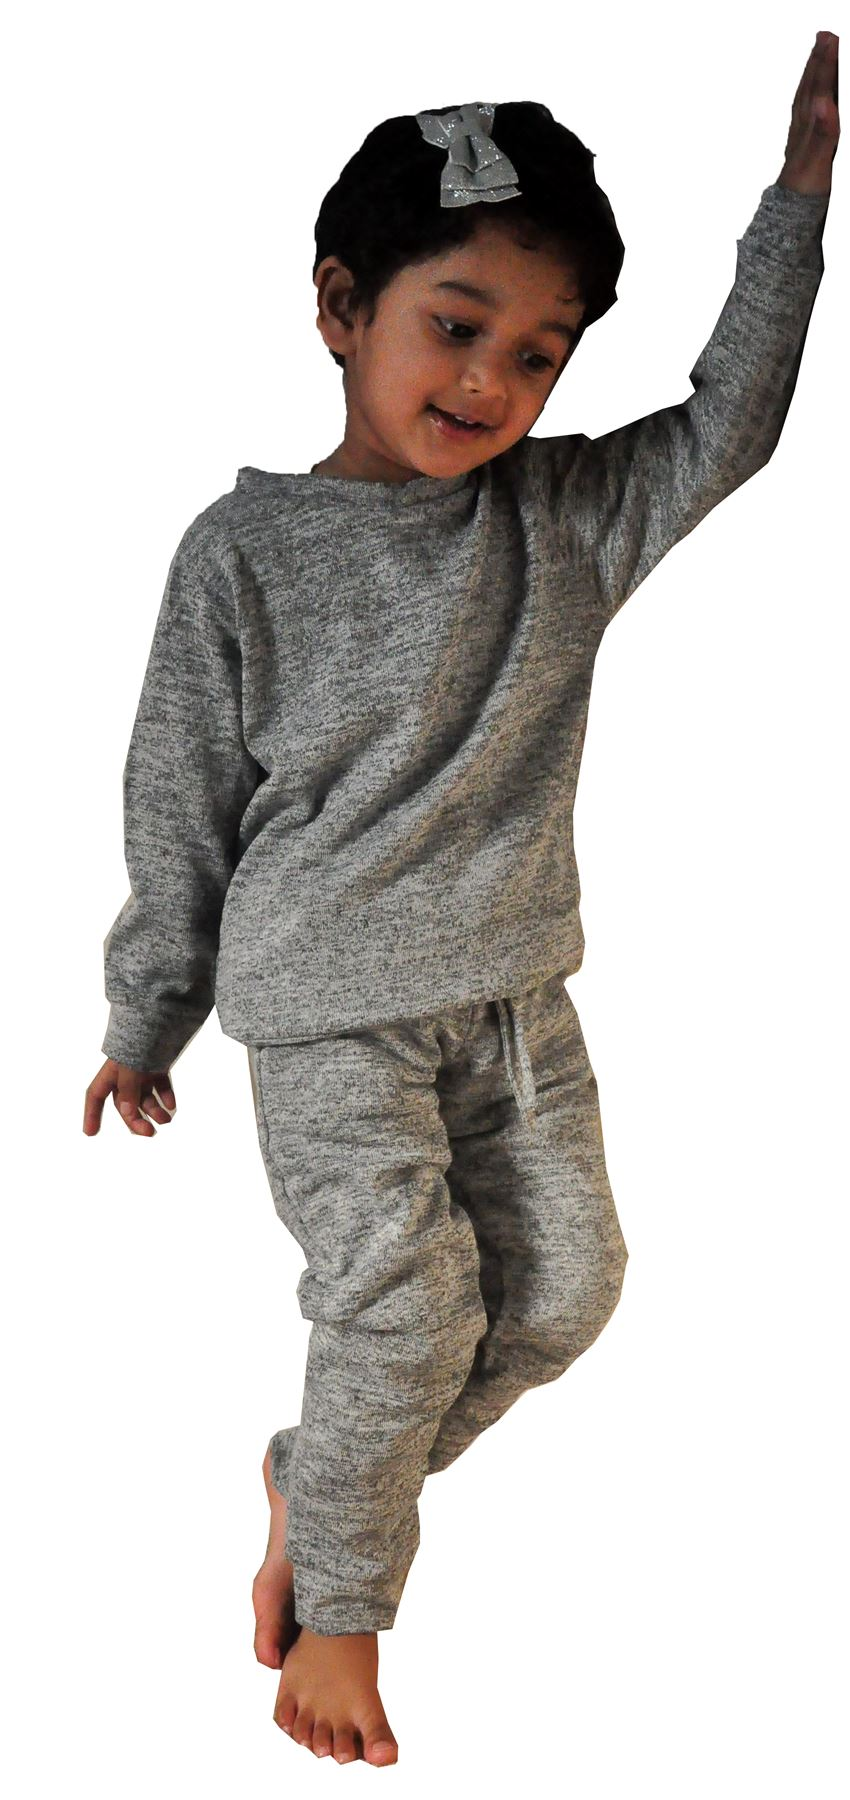 GIRLS KIDS LIGHT WEIGHT PLAIN TEXTURED DOUBLE POCKET LOUNGE TRACK SUIT 2-13 YEAR